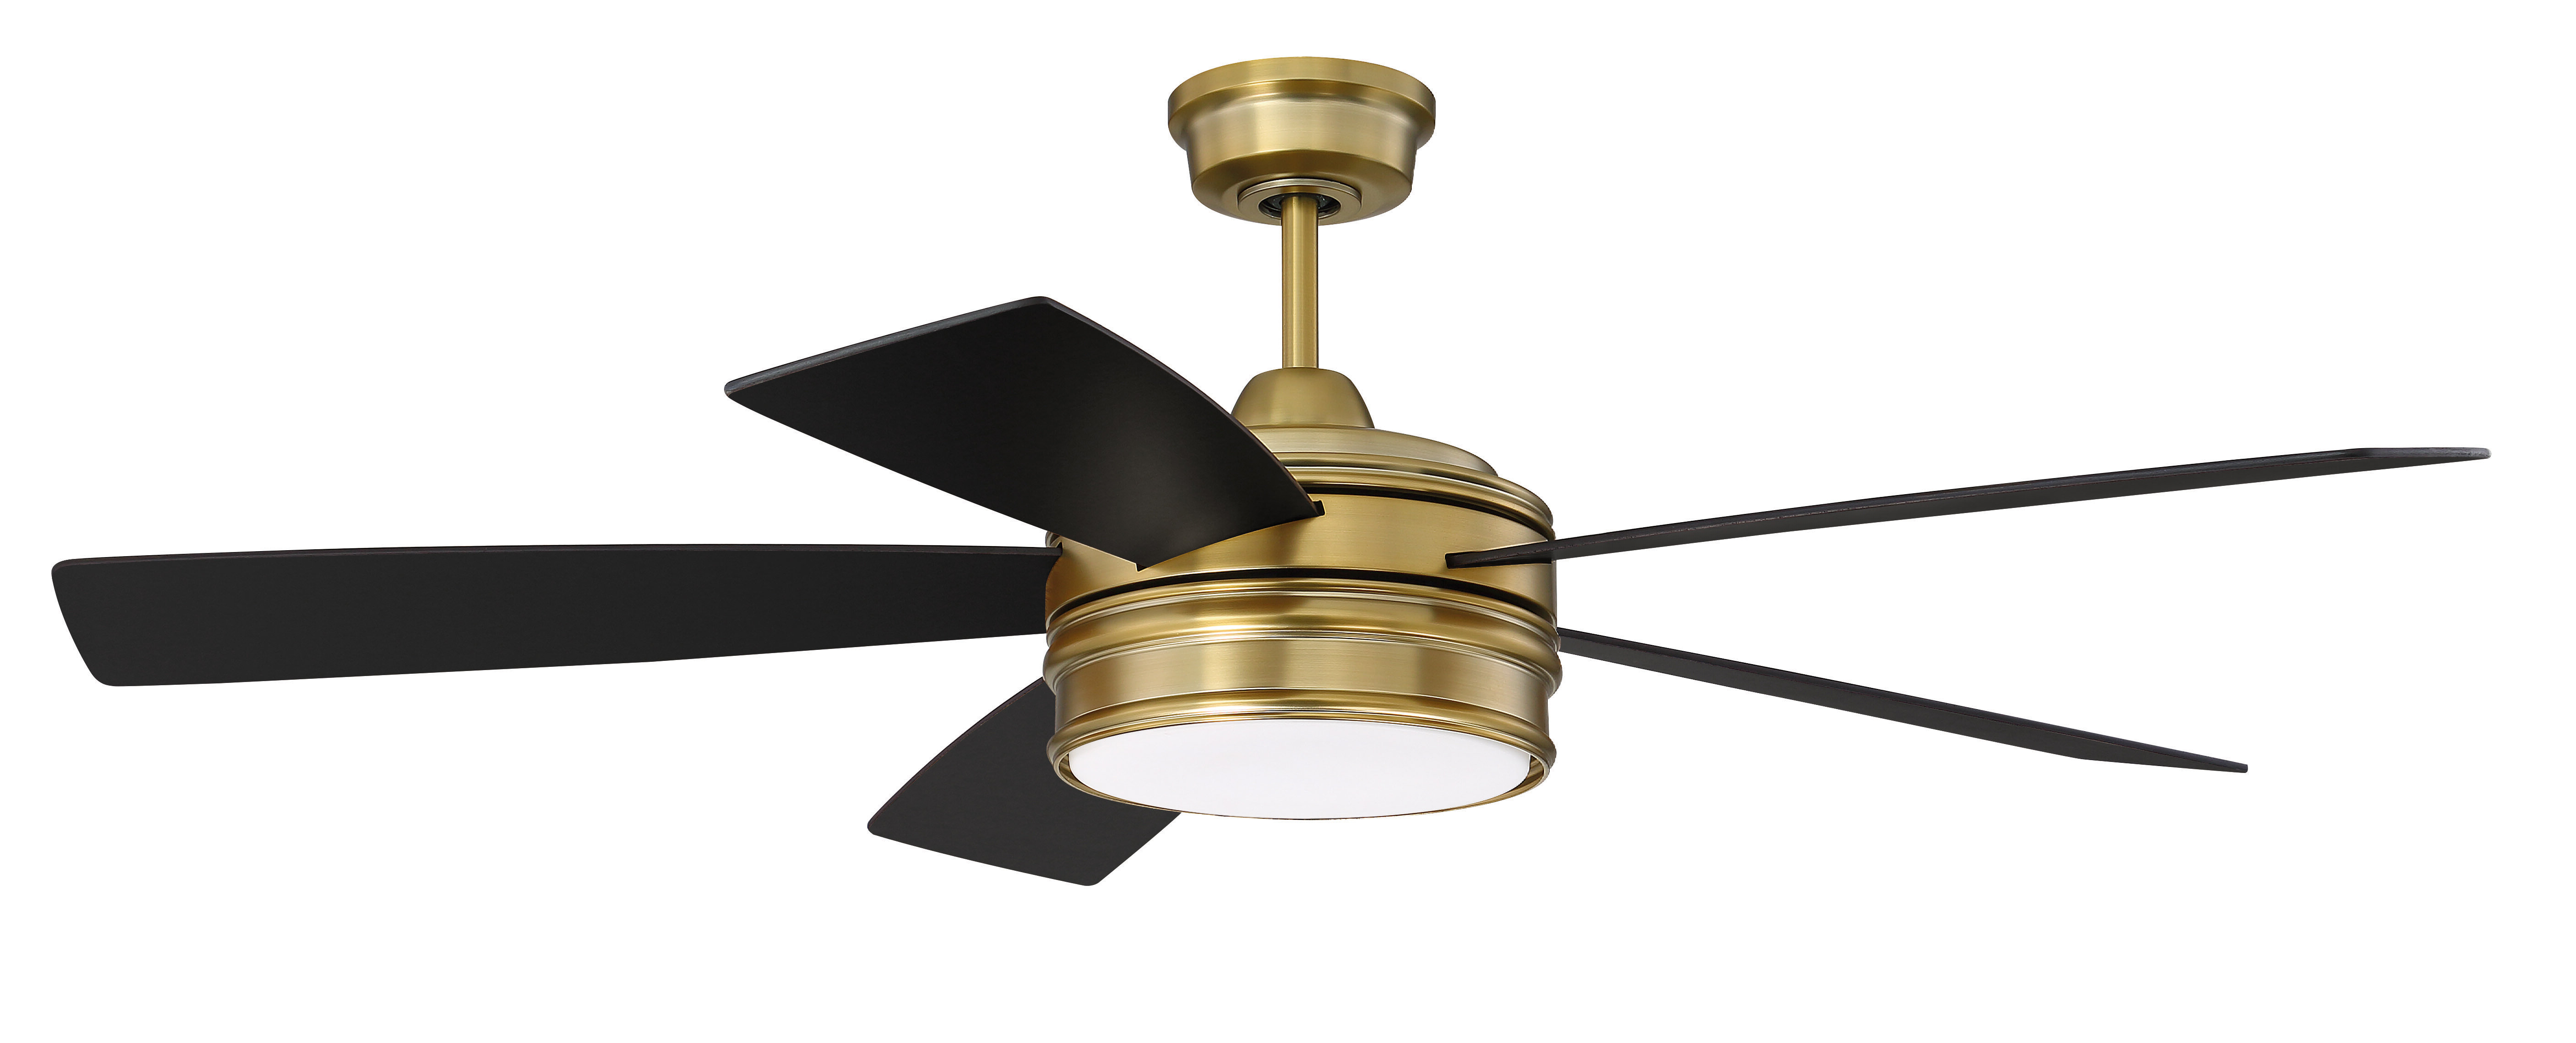 "52"" Winchcombe 5 Blade Led Ceiling Fan With Remote Light Kit Regarding Widely Used Cedarton 5 Blade Led Ceiling Fans (View 8 of 20)"